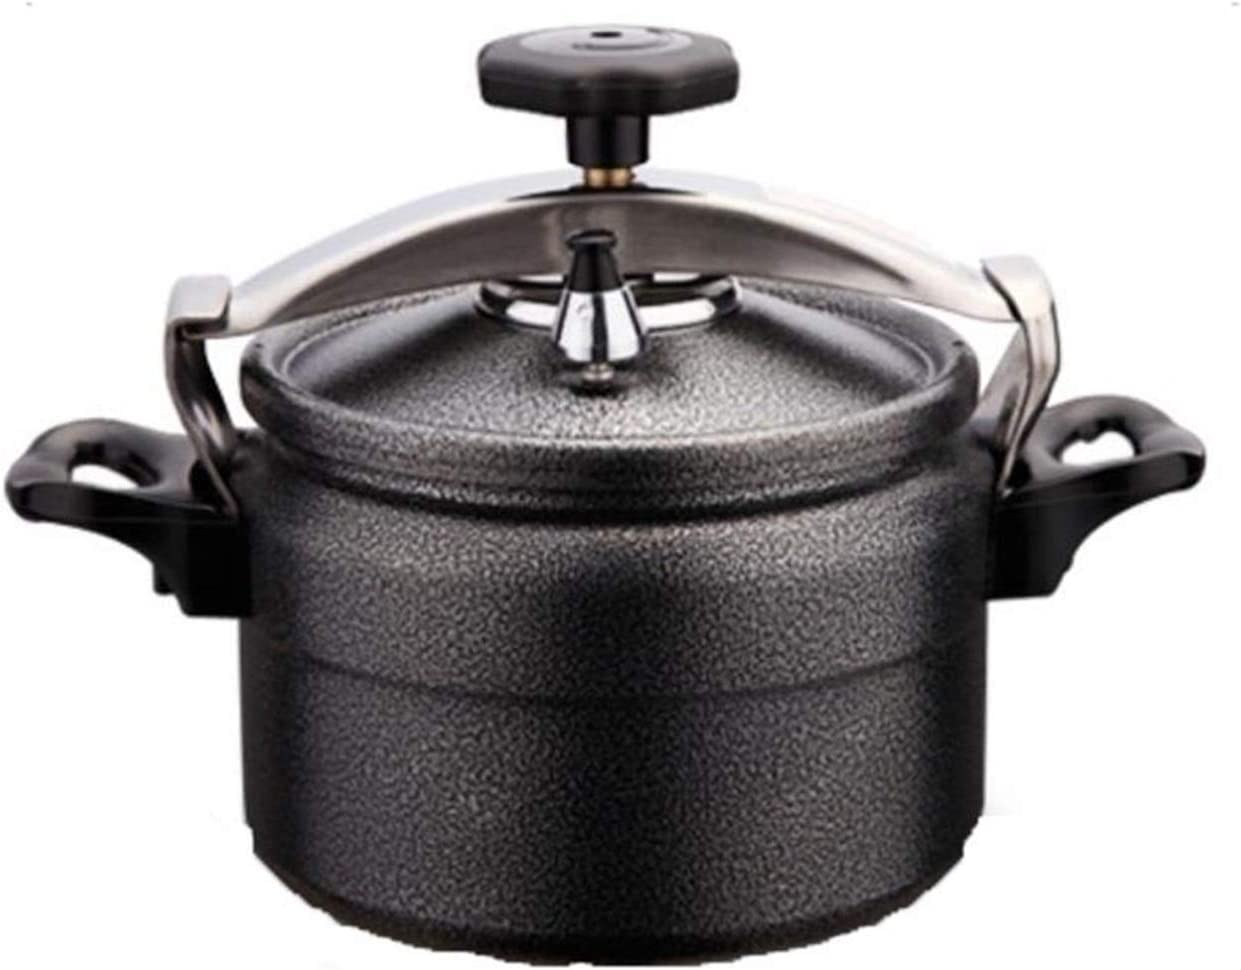 Outdoor pressure cooker, thickened reinforced aluminum explosion-proof Pressure cooker, high altitude available cooking pot, outdoor drinking utensils 3L, 4L, 5L (Color : Black, Size : 4L)